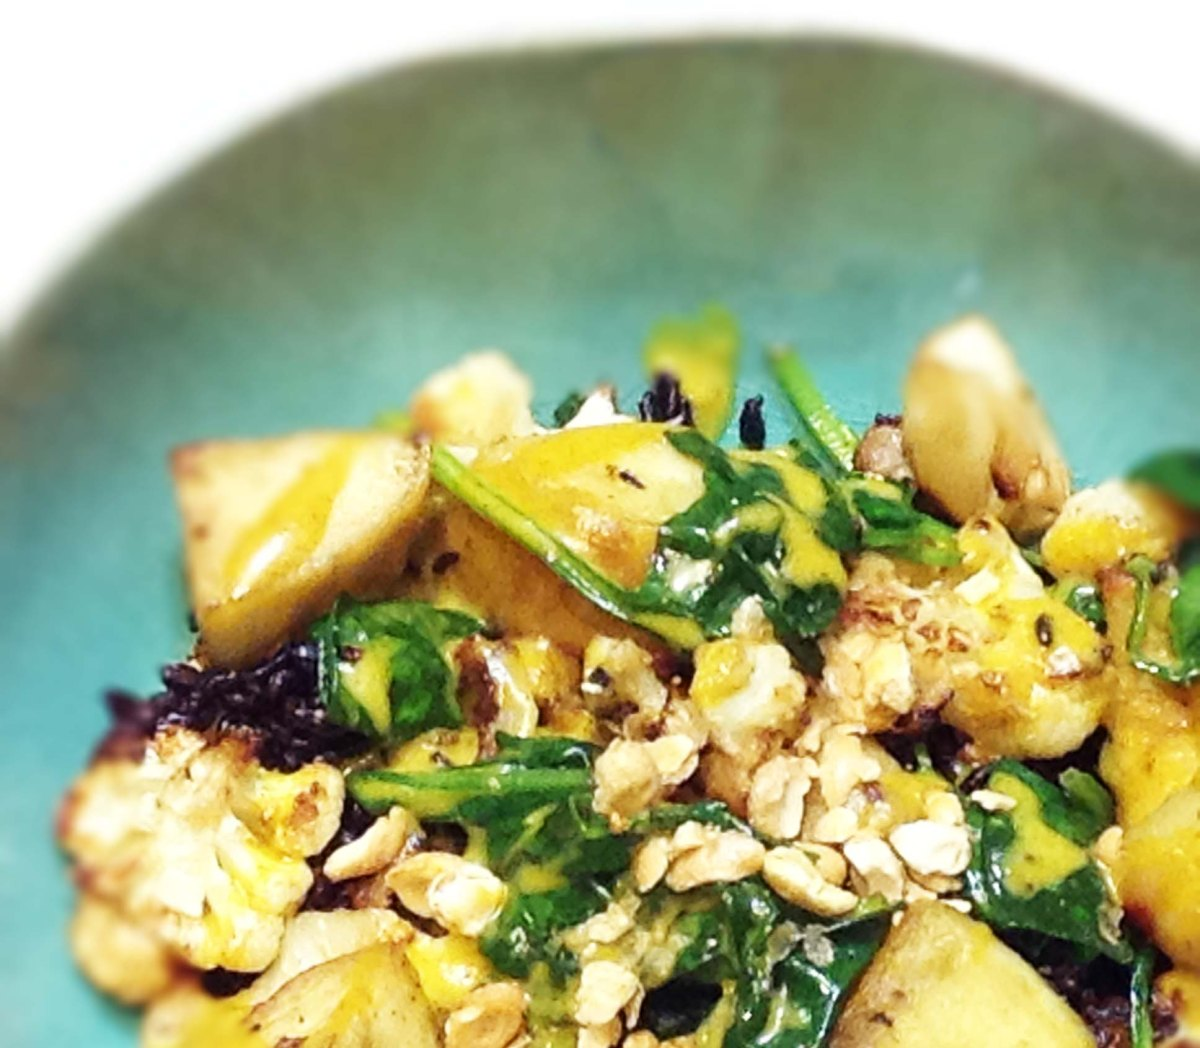 ... Potato, Spinach, and Pineapple with Curry Ginger Cardamom Cream Sauce